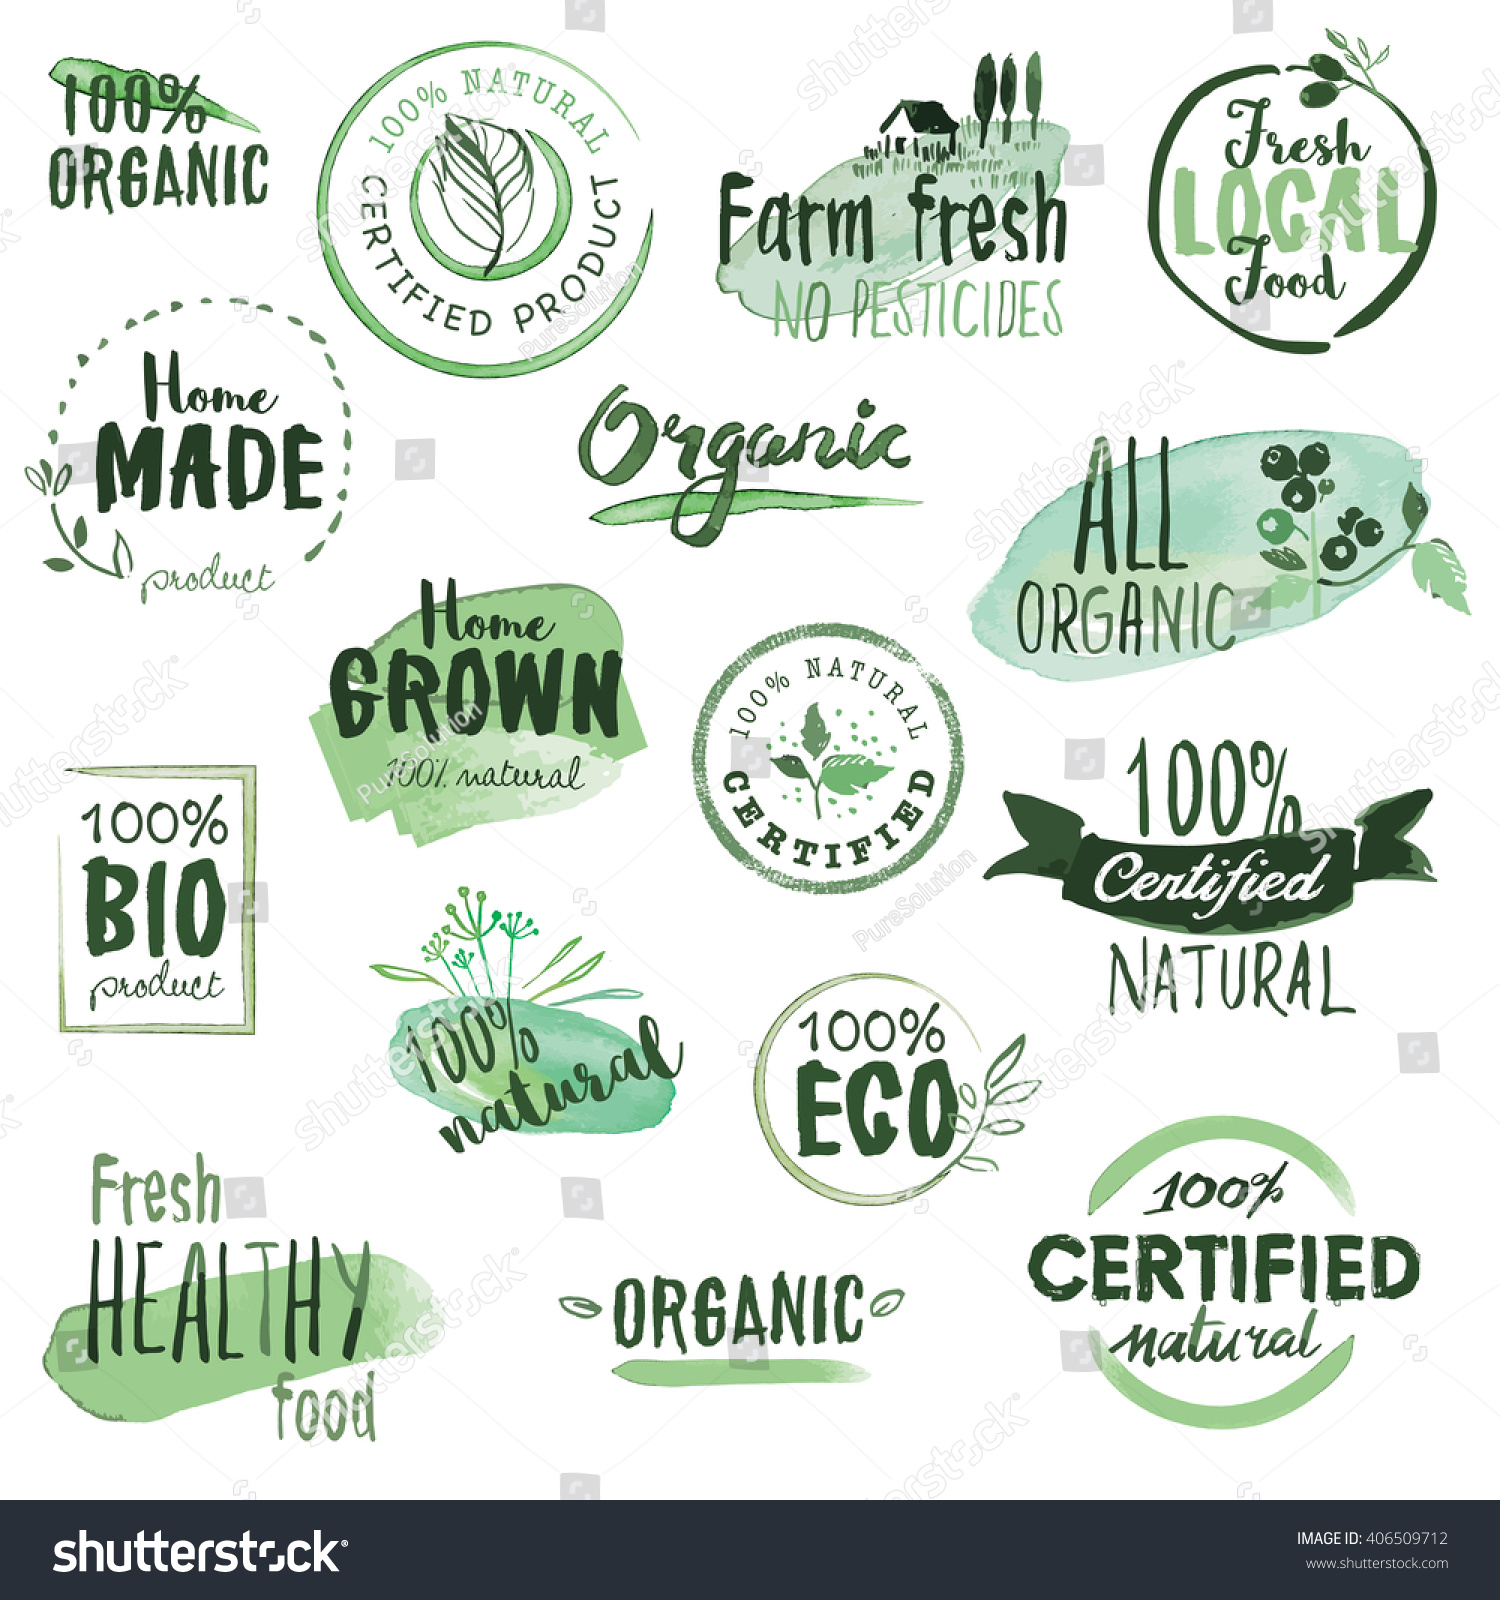 Organic food stickers and badges Hand drawn watercolor vector illustration set for food and drink restaurant natural products